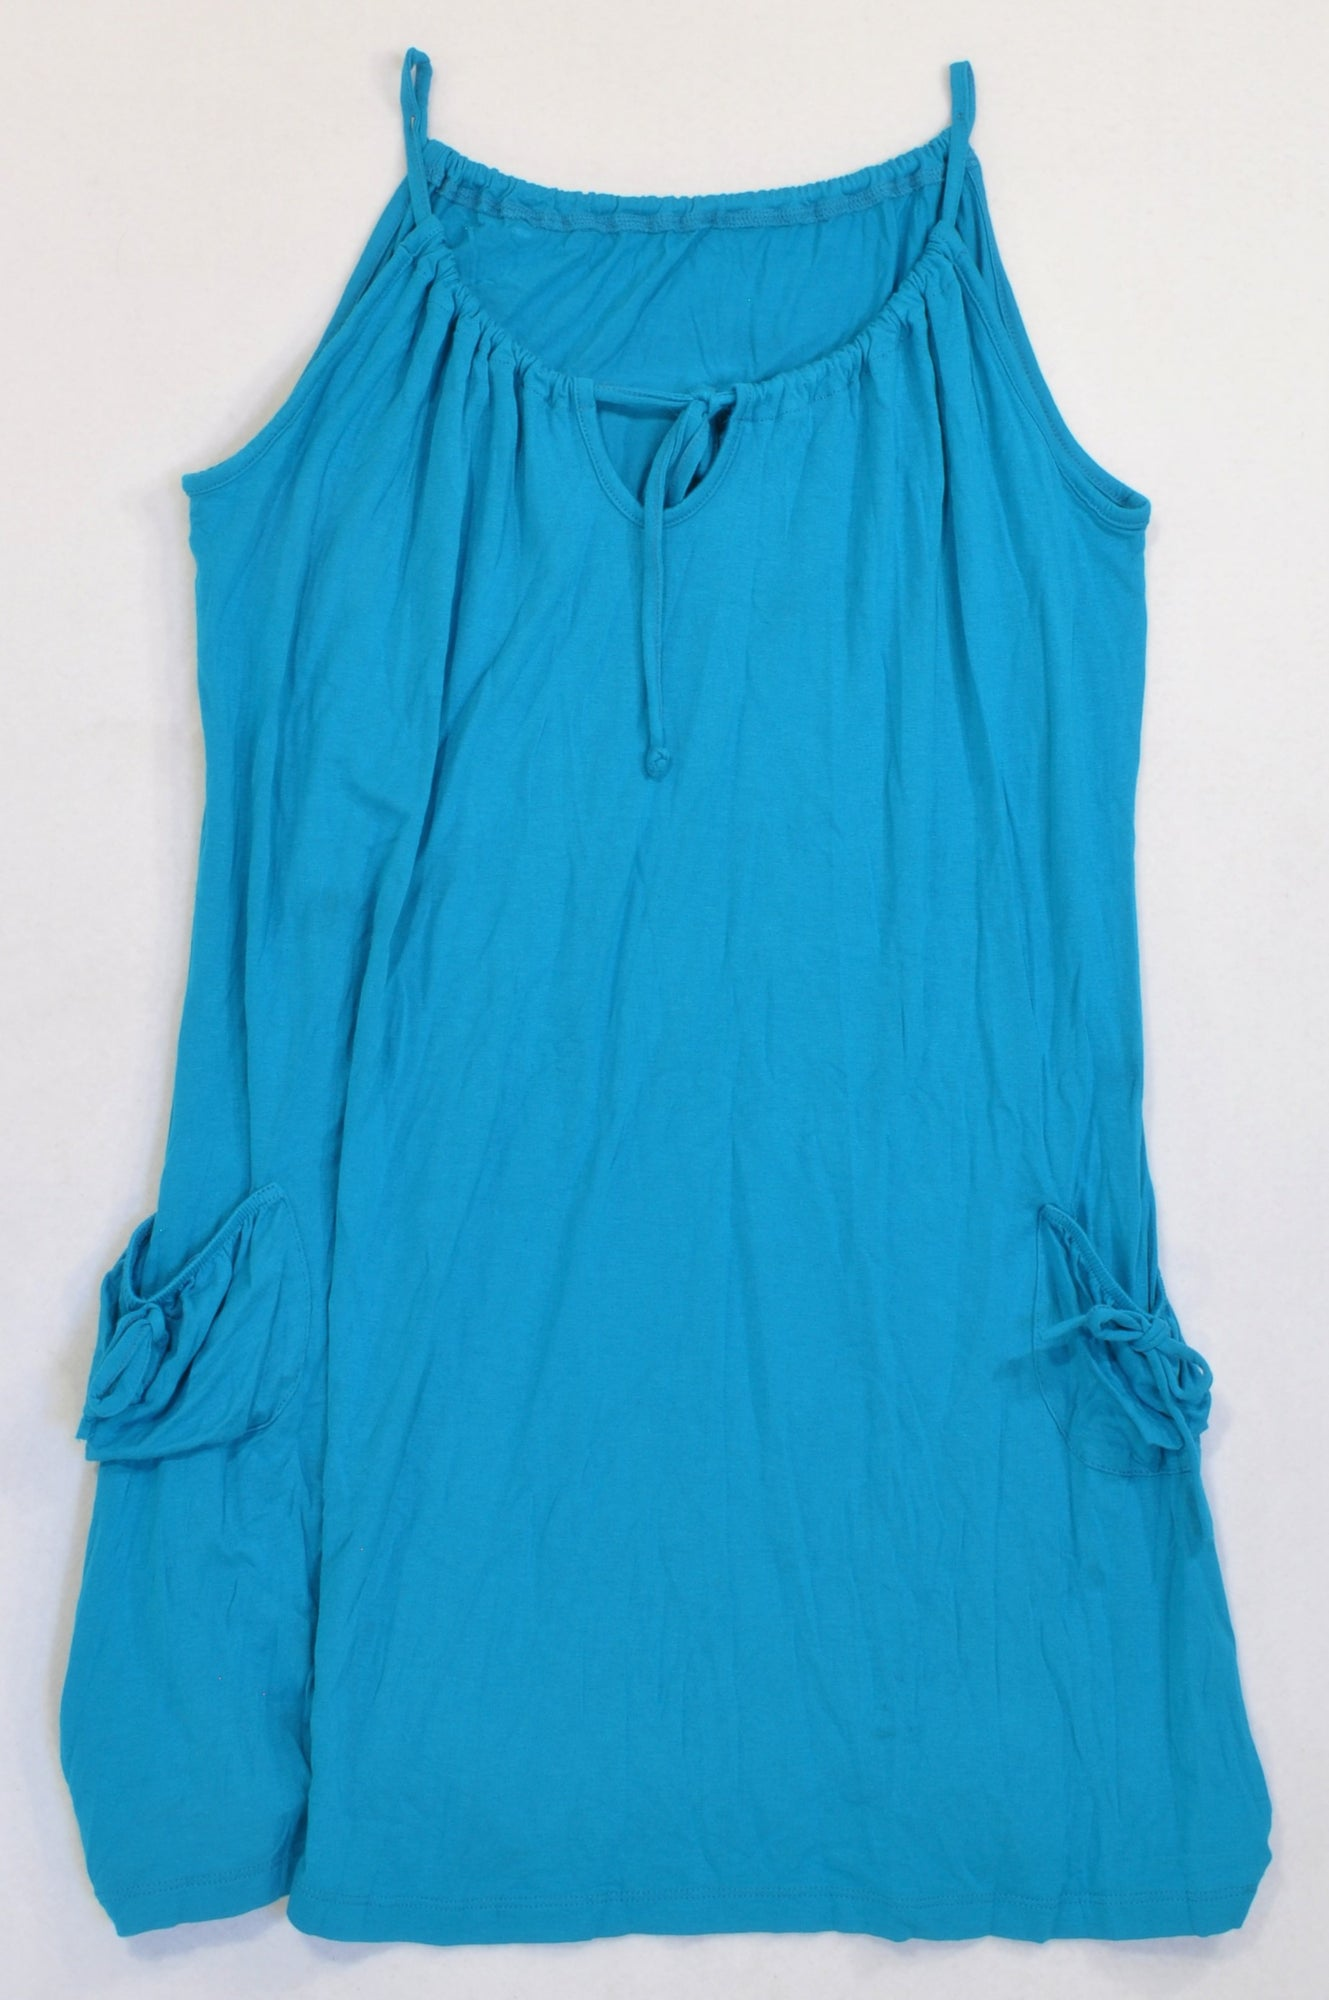 Woolworths Teal Pocket Tie Tunic Tank Top Women Size M